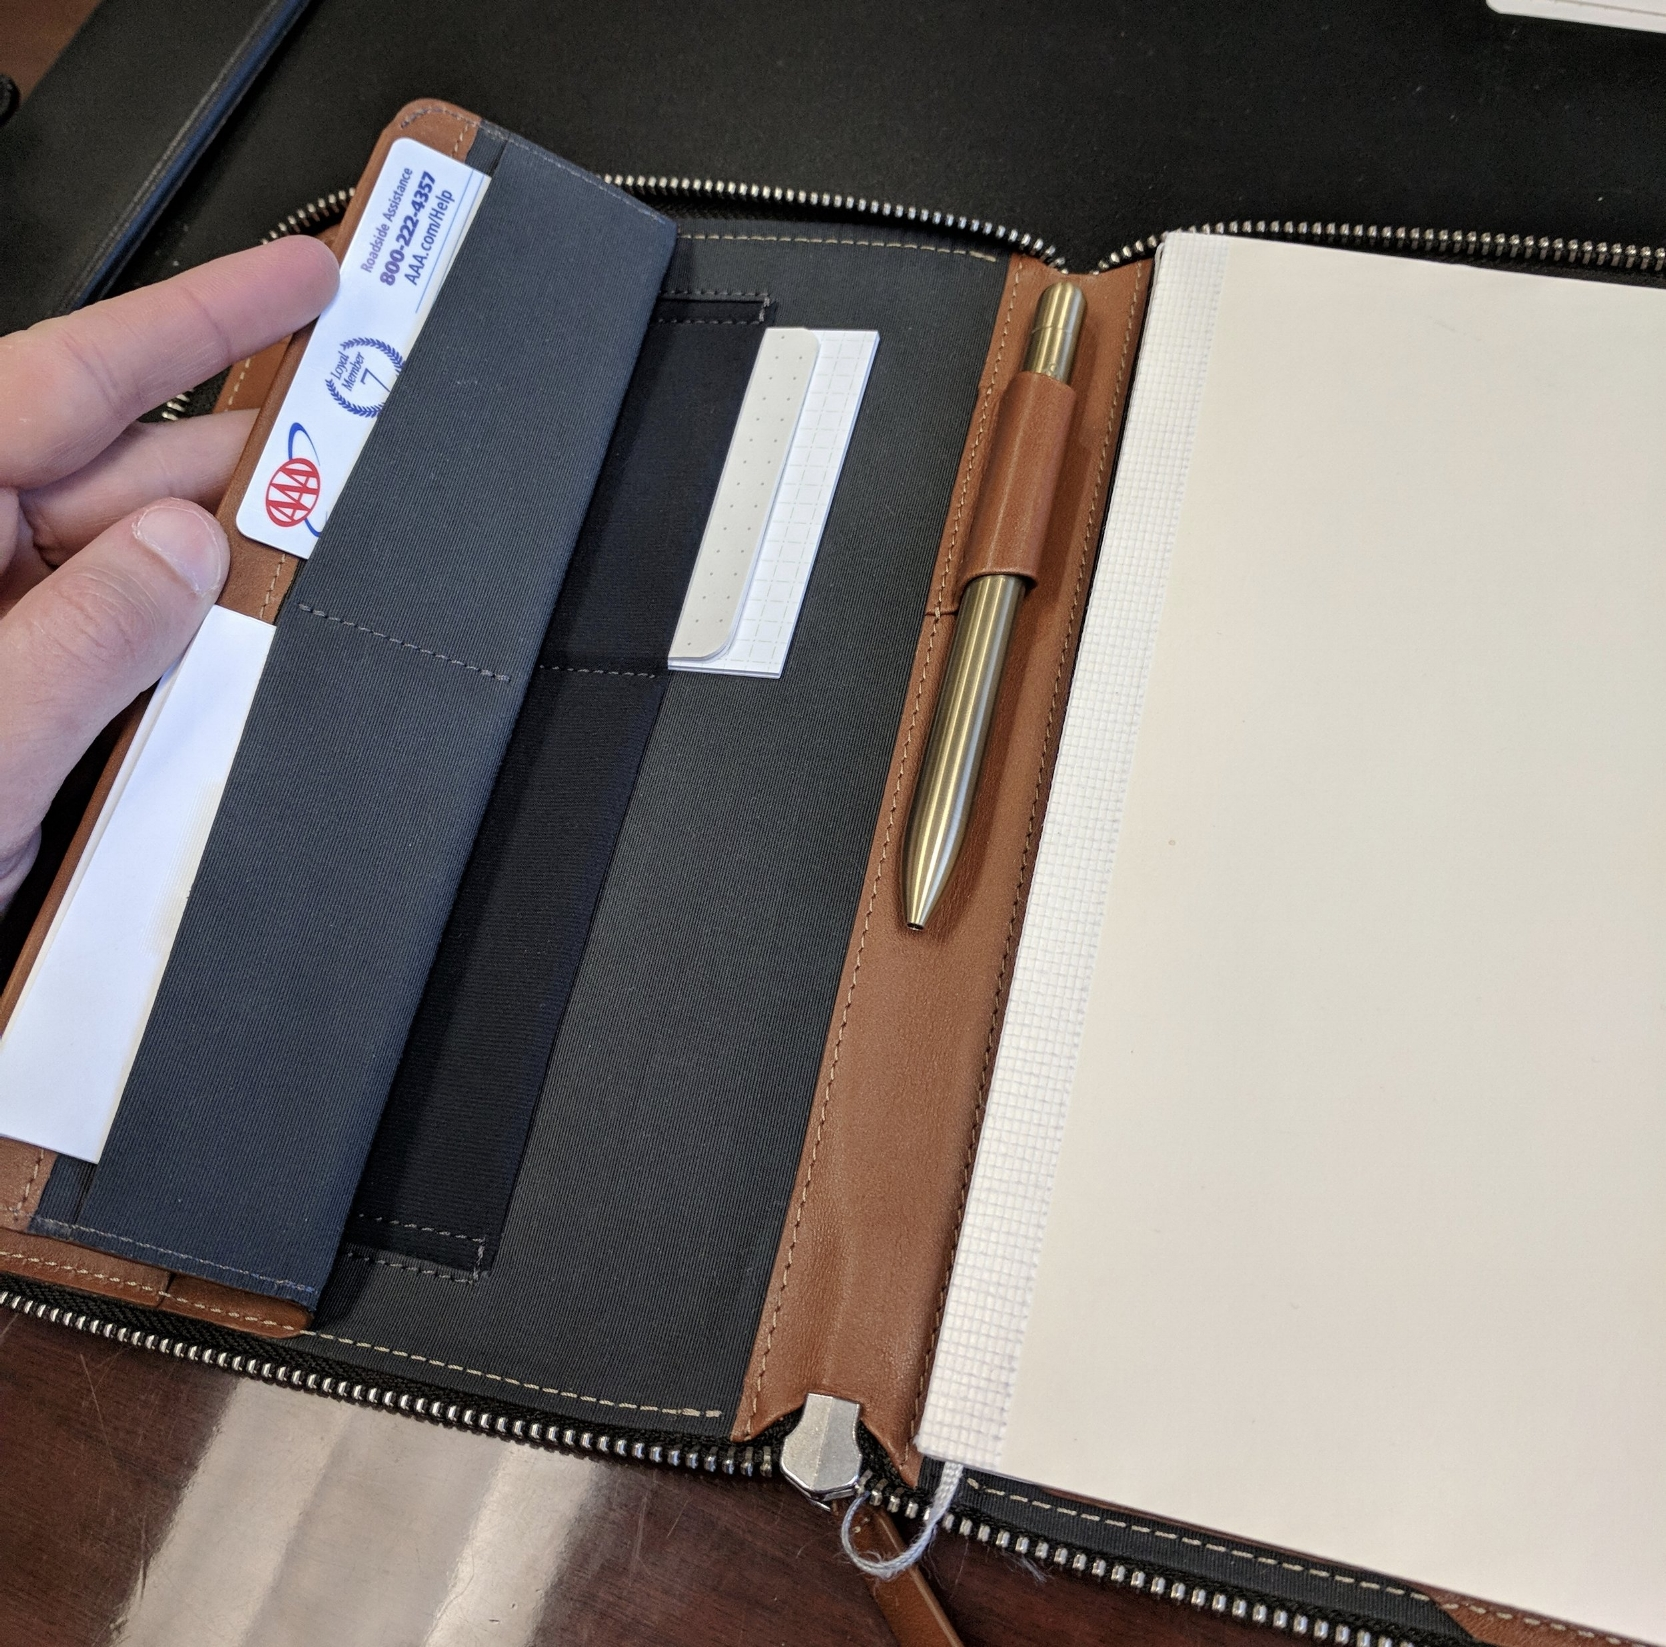 The left inside flap has pockets to hold business cards, notecards, post-its, your phone, a pocket notebook, etc. I'm sure you could also use them to hold a power bank, headphones, charging cables, and other small odds and ends if you use your folio to hold your tech products when traveling.